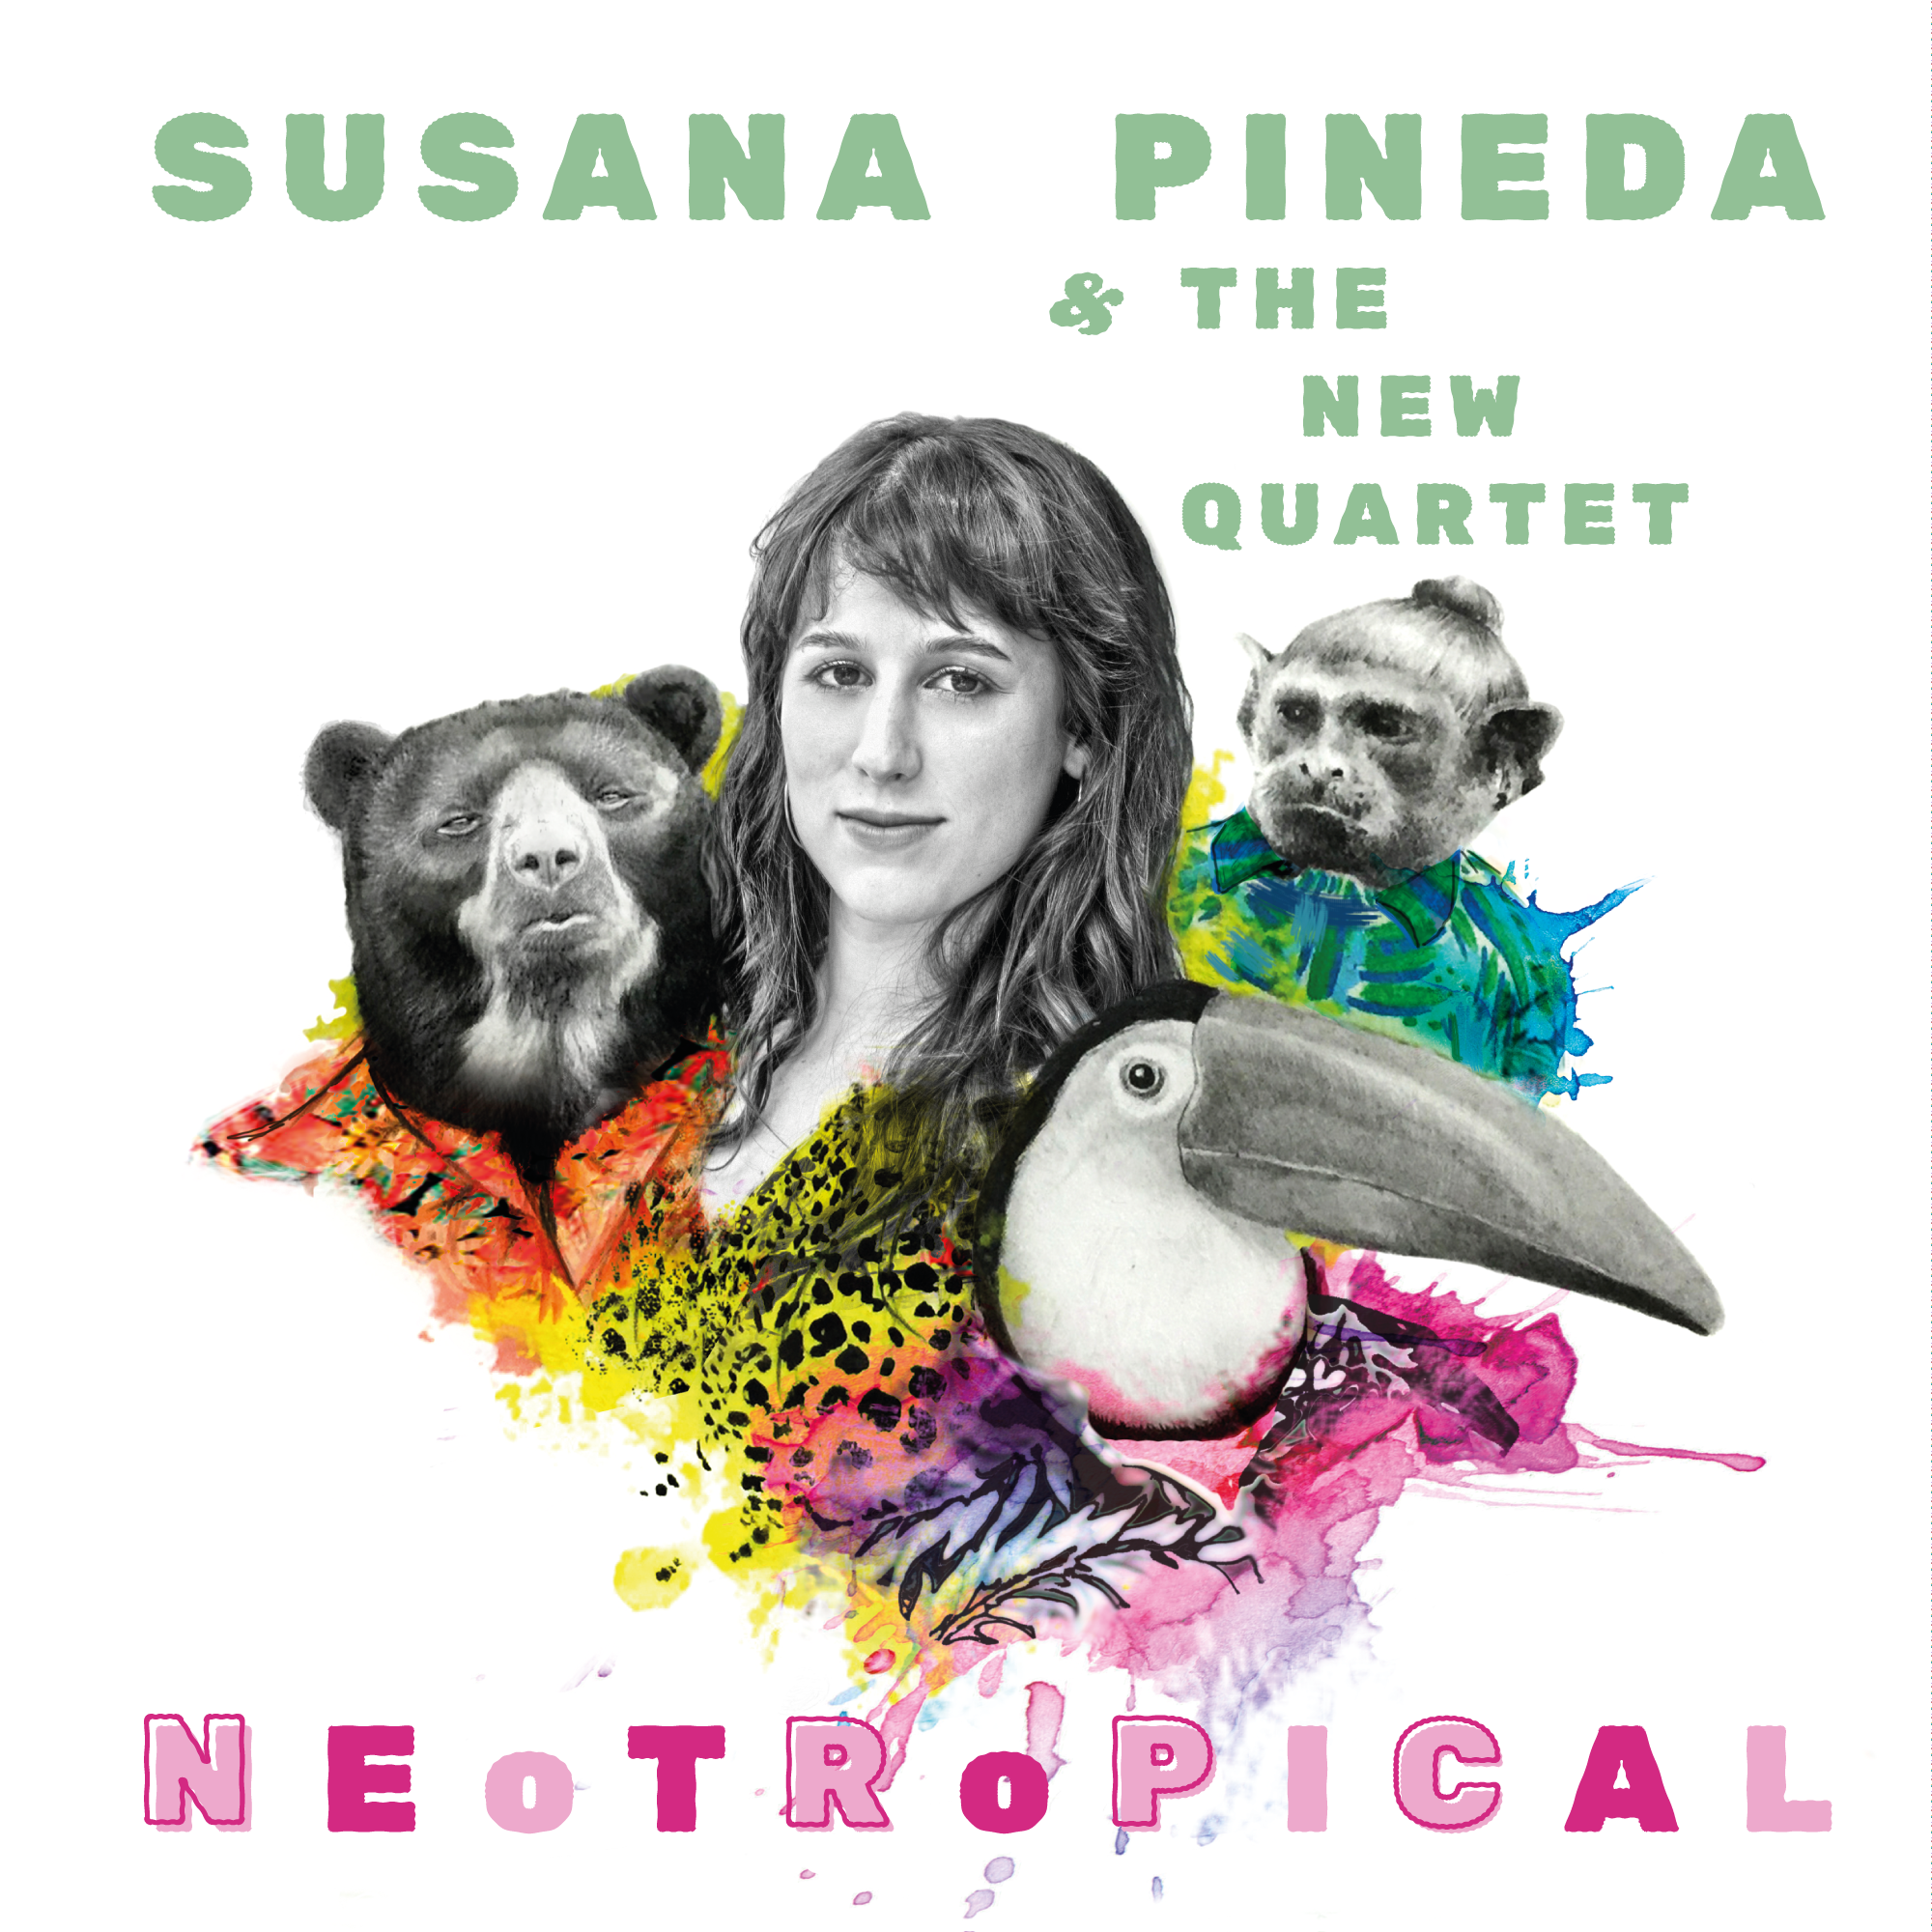 New Album! - Neotropical is a blend of of modern jazz and Latin rhythms. It is a musical fusion of the modern and the traditional, the city and nature, of North and South America.